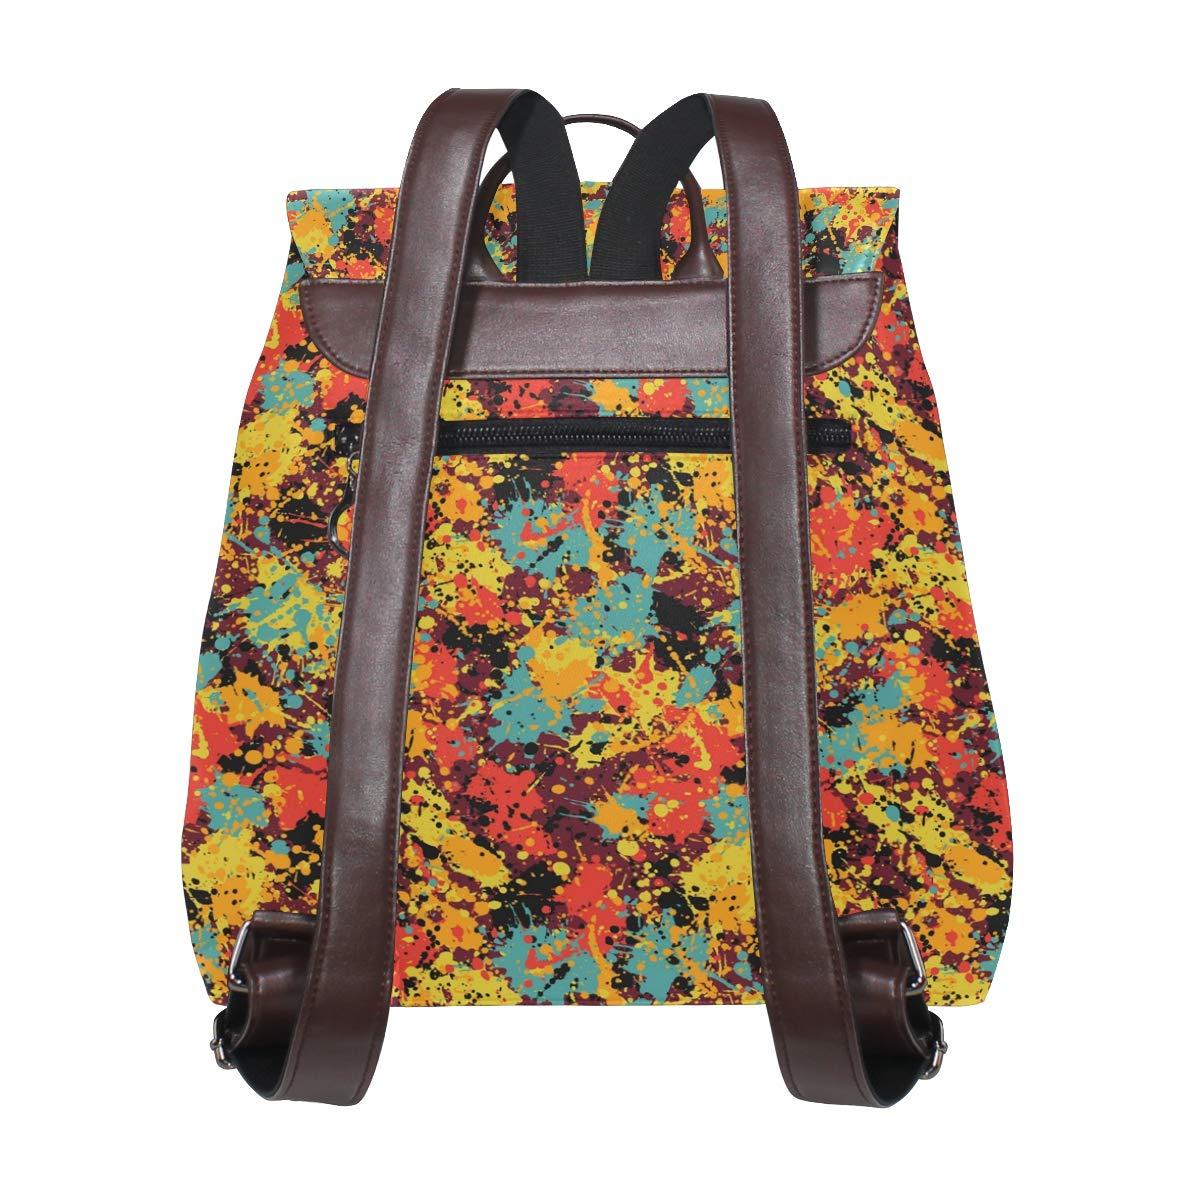 Unisex PU Leather Backpack Camo Gifts for Women Colorful 1 Print Womens Casual Daypack Mens Travel Sports Bag Boys College Bookbag